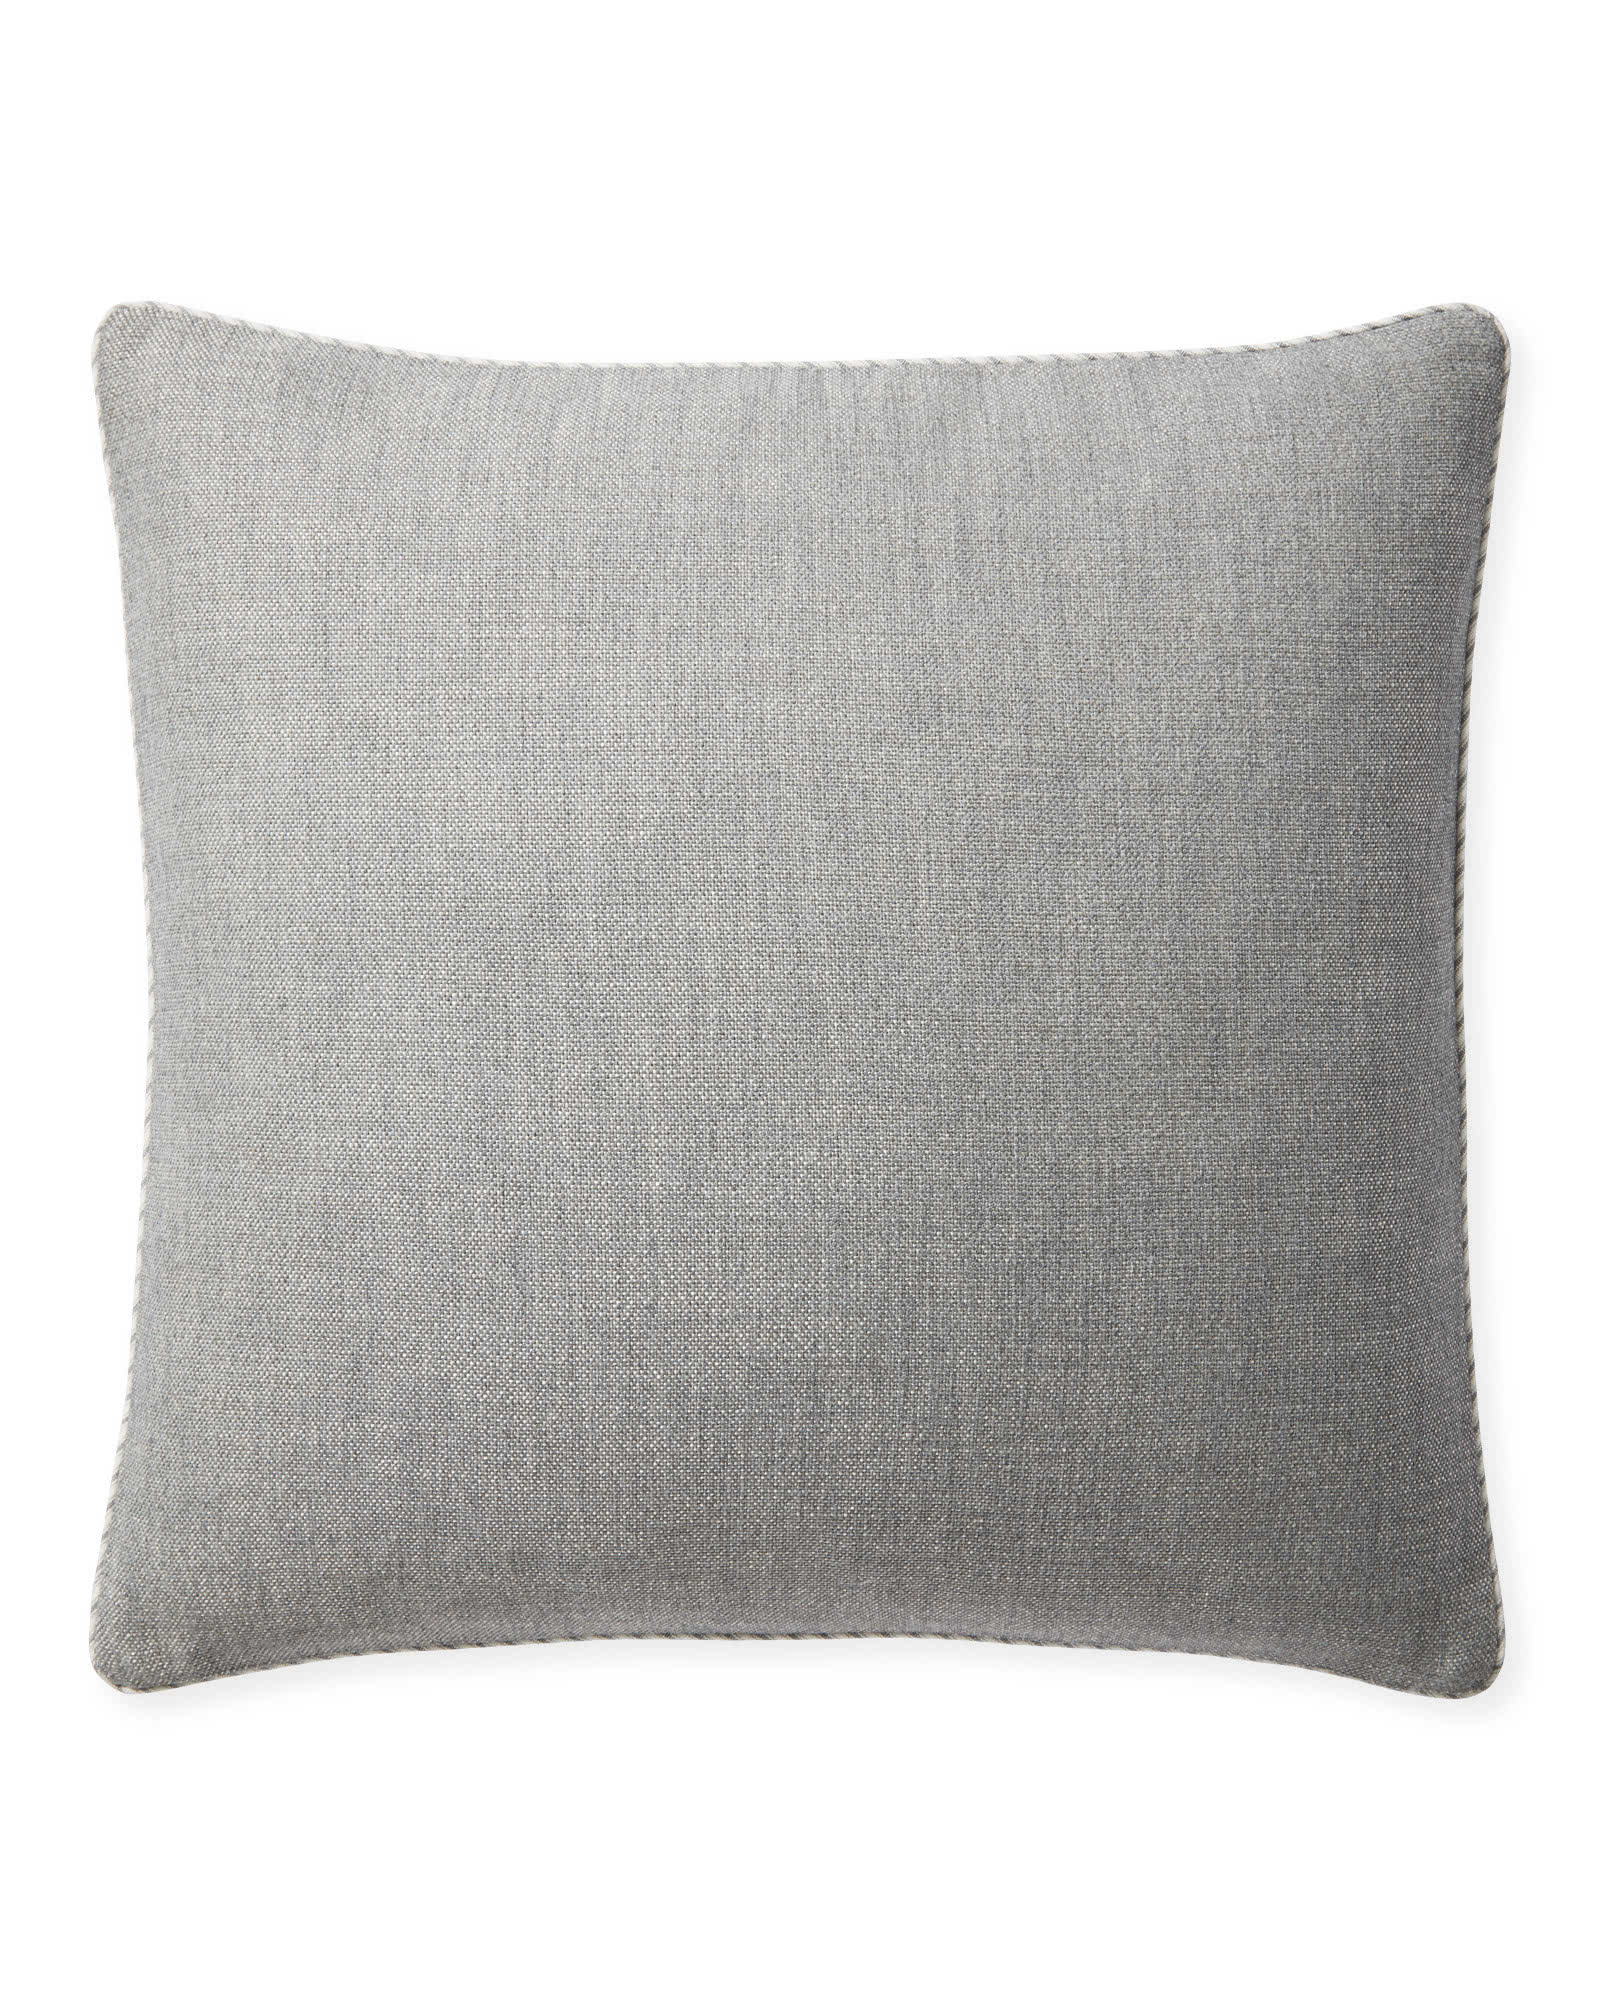 Perennials® Basketweave Outdoor Pillow Cover, Platinum